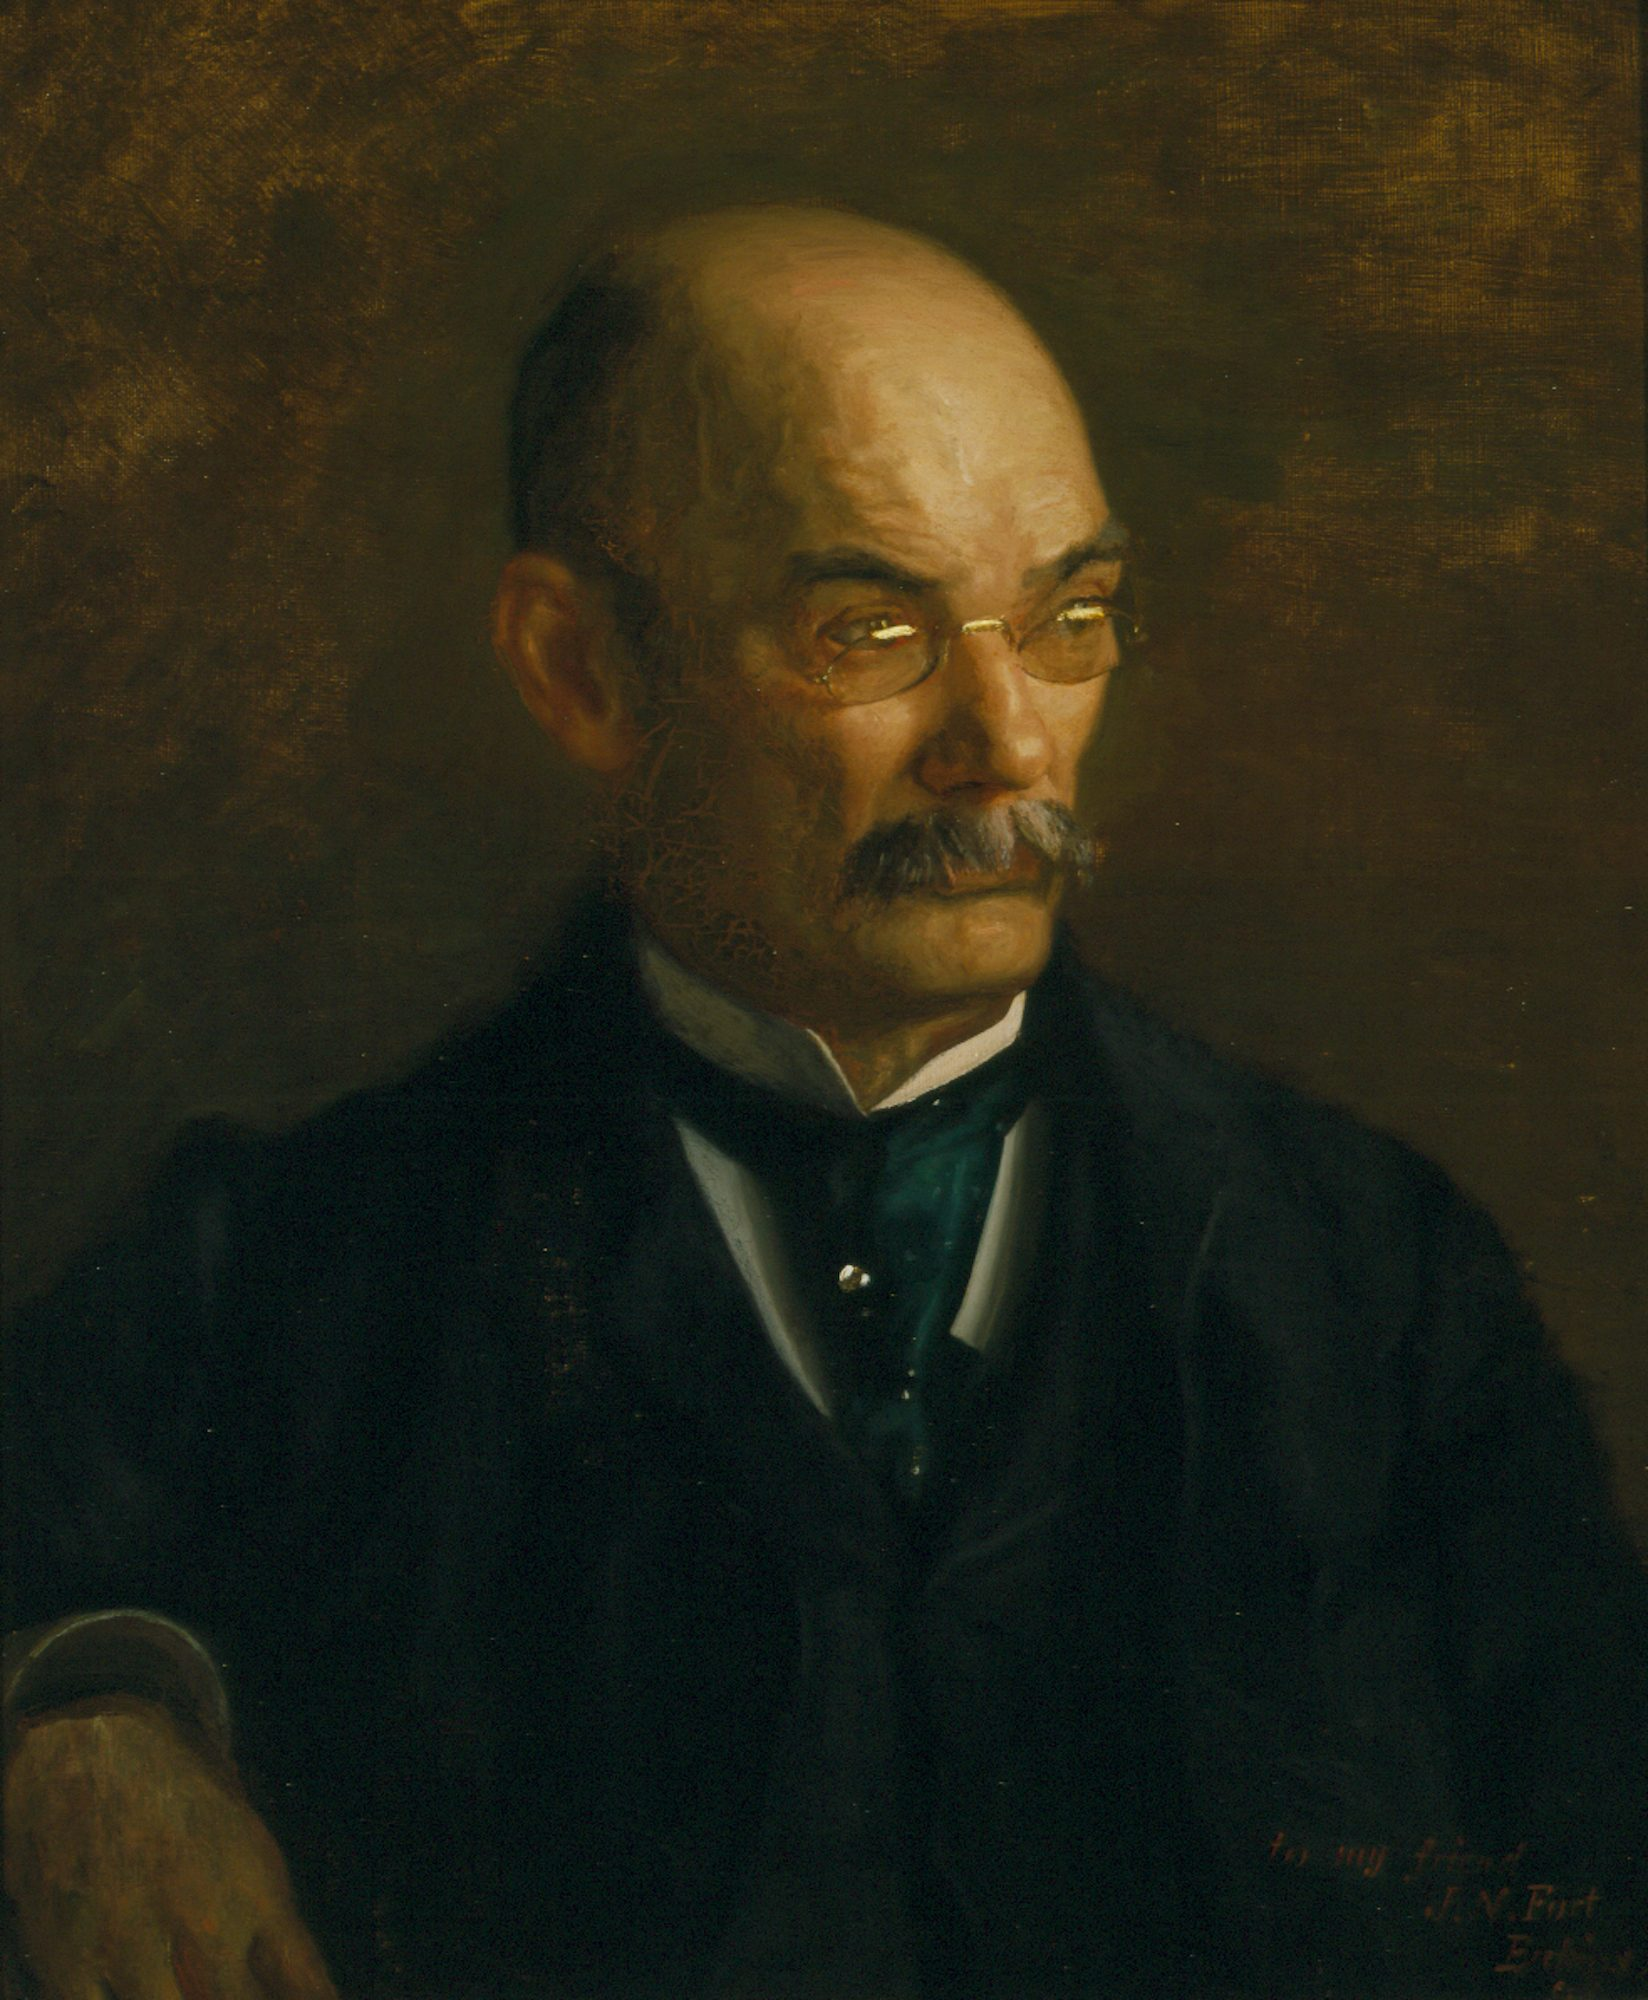 Thomas Eakins (American, 1844–1916) Portrait of John Neil Fort, 1898. Oil on canvas. Bequest of Lawrence H. Bloedel, Class of 1923, 77.9.115